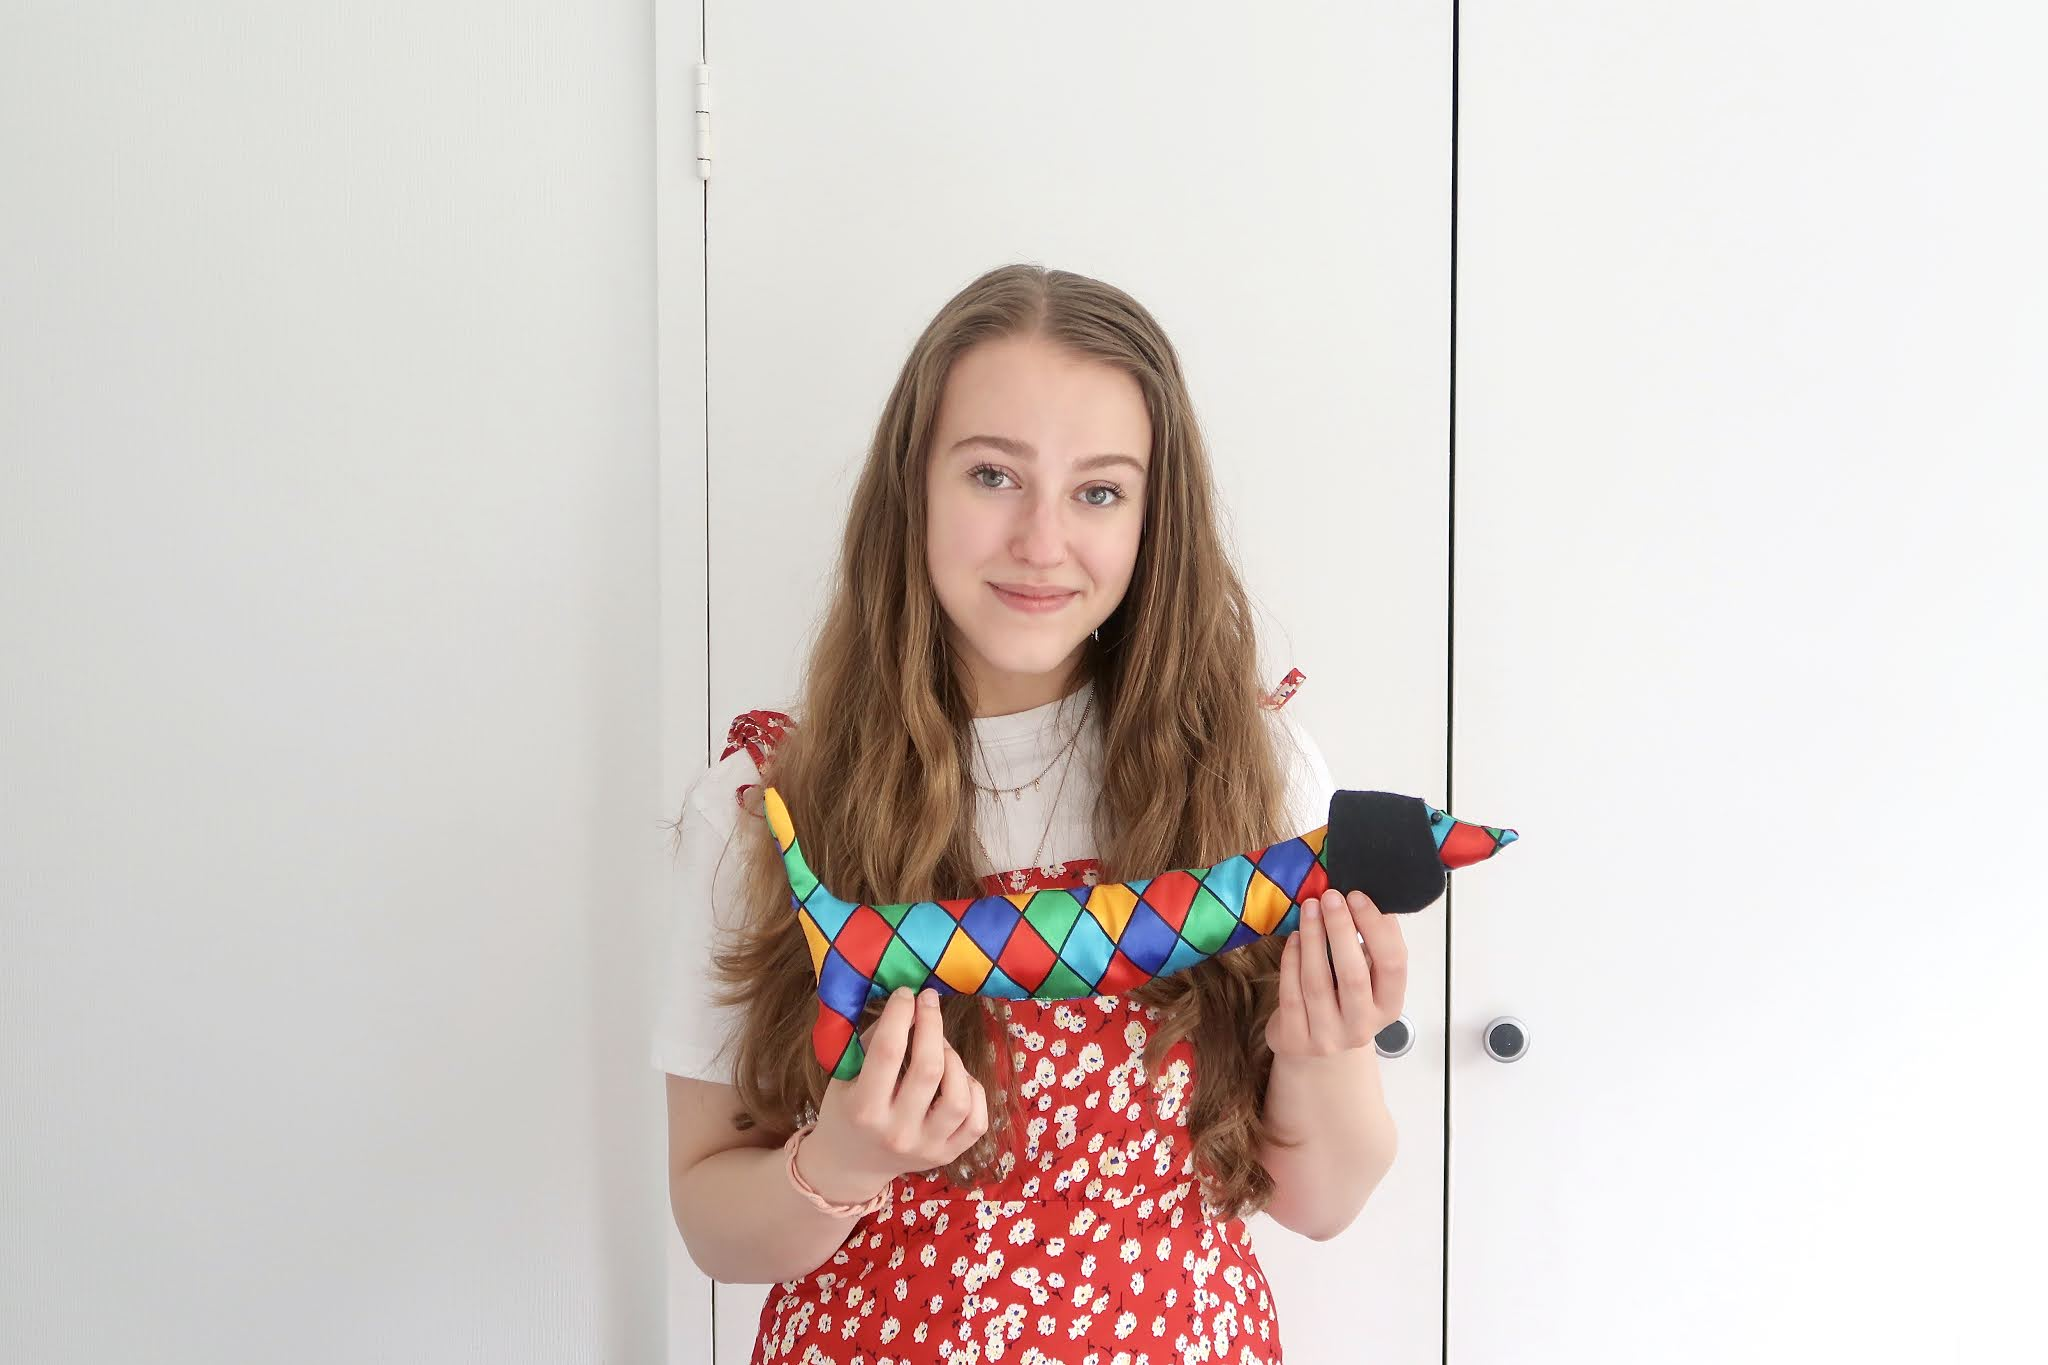 Georgie wearing a red floral dress holding up her latest sewing creation, a harlequin sausage dog wrist support for computers